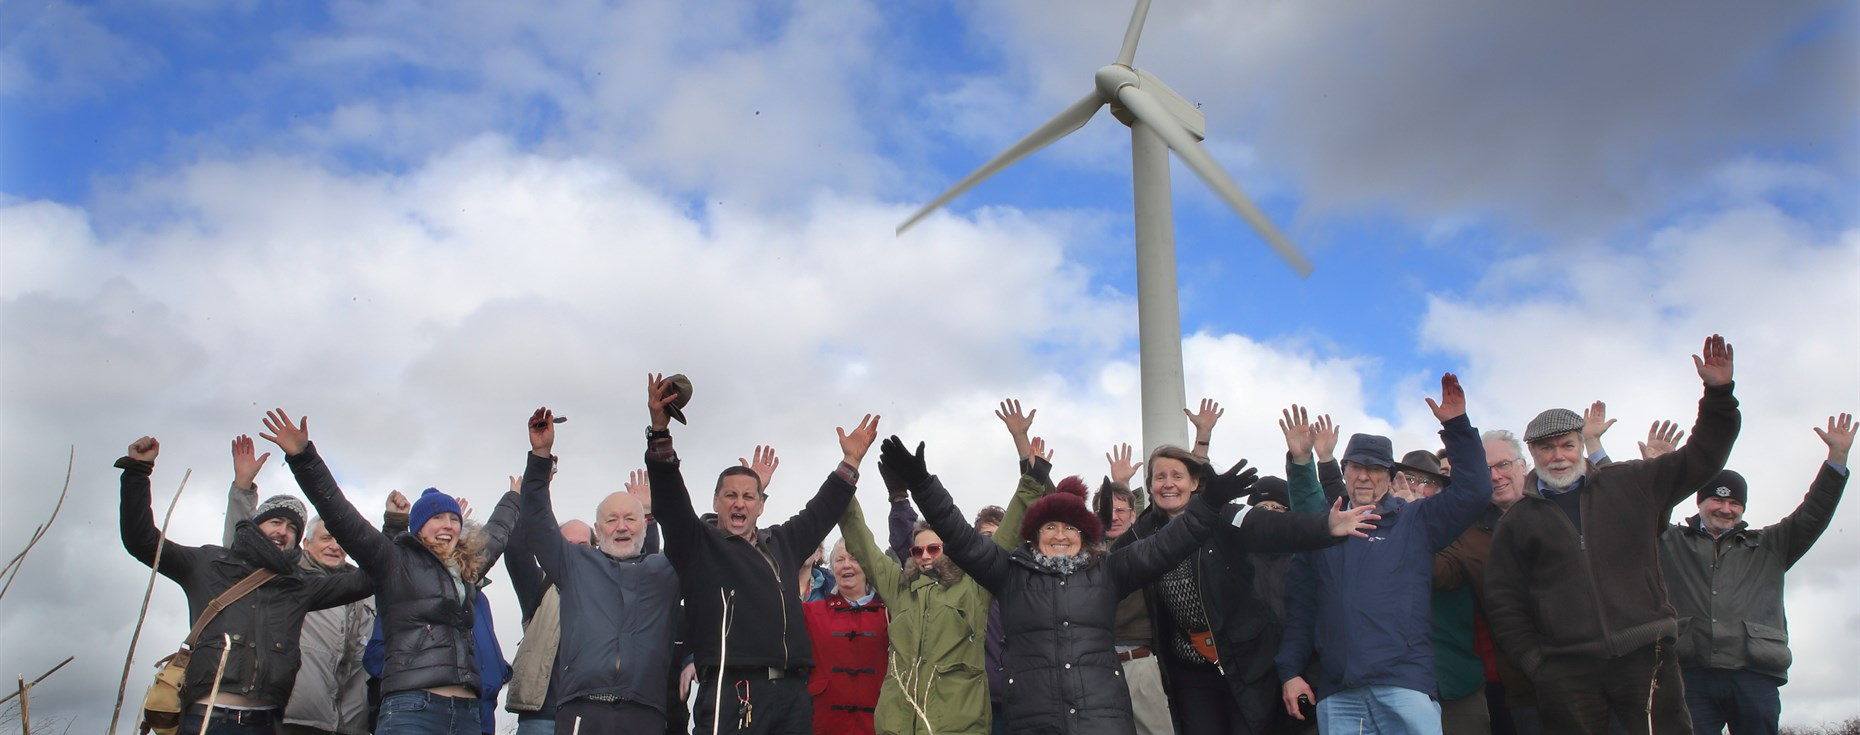 Build Your Own… Wind Turbine?